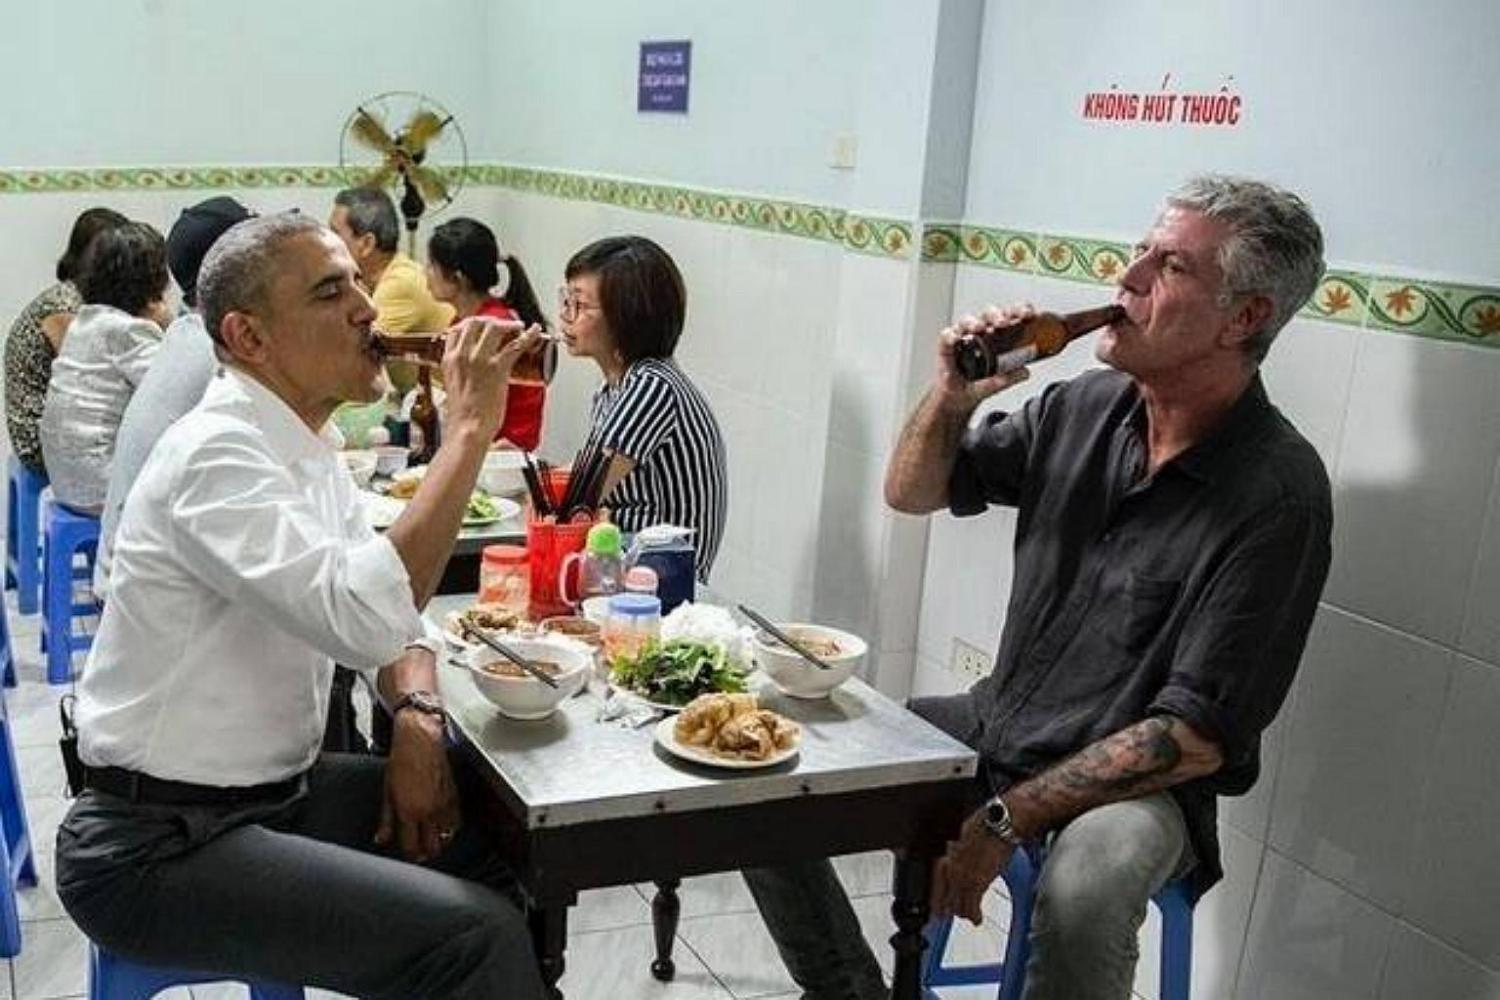 president obama and anthony bourdain ate a $6 meal in vietnam